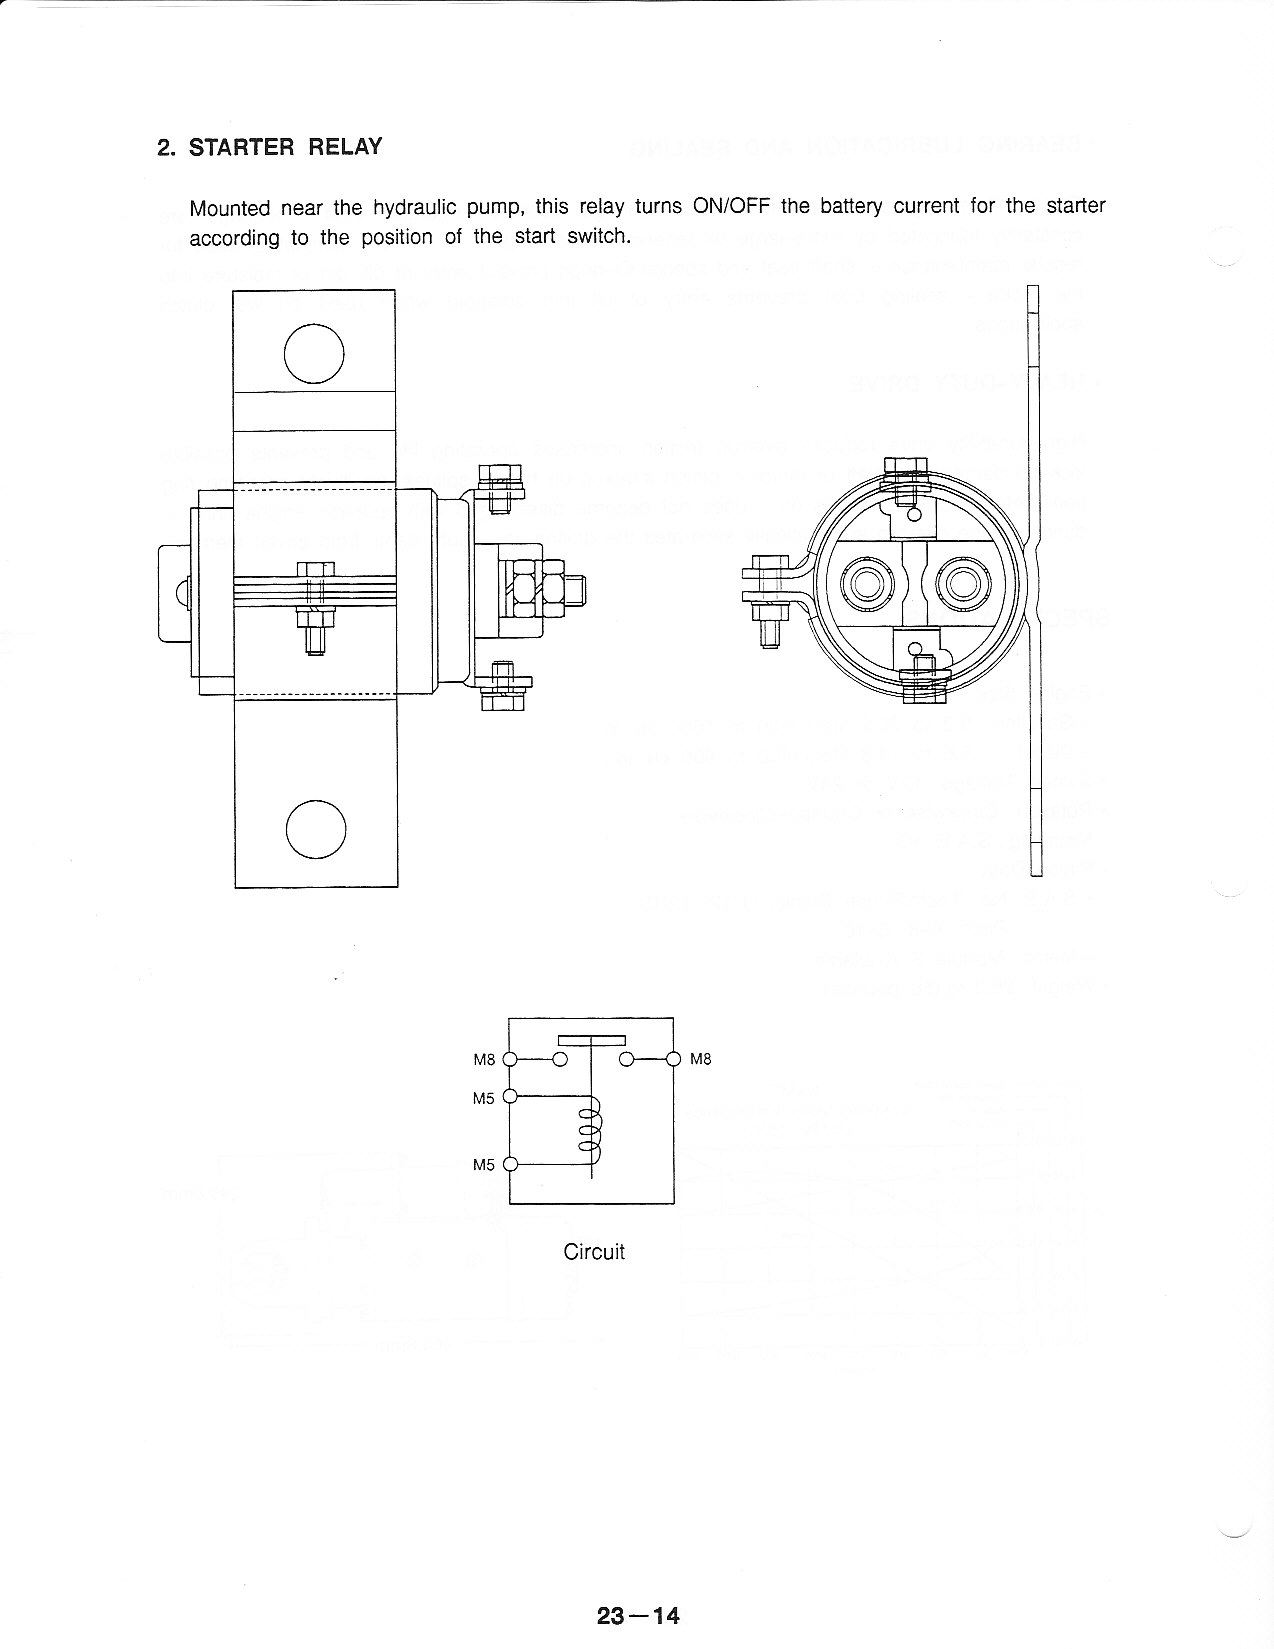 wiring schematic for the starting system on a samsung excavator let try this again thanks dan